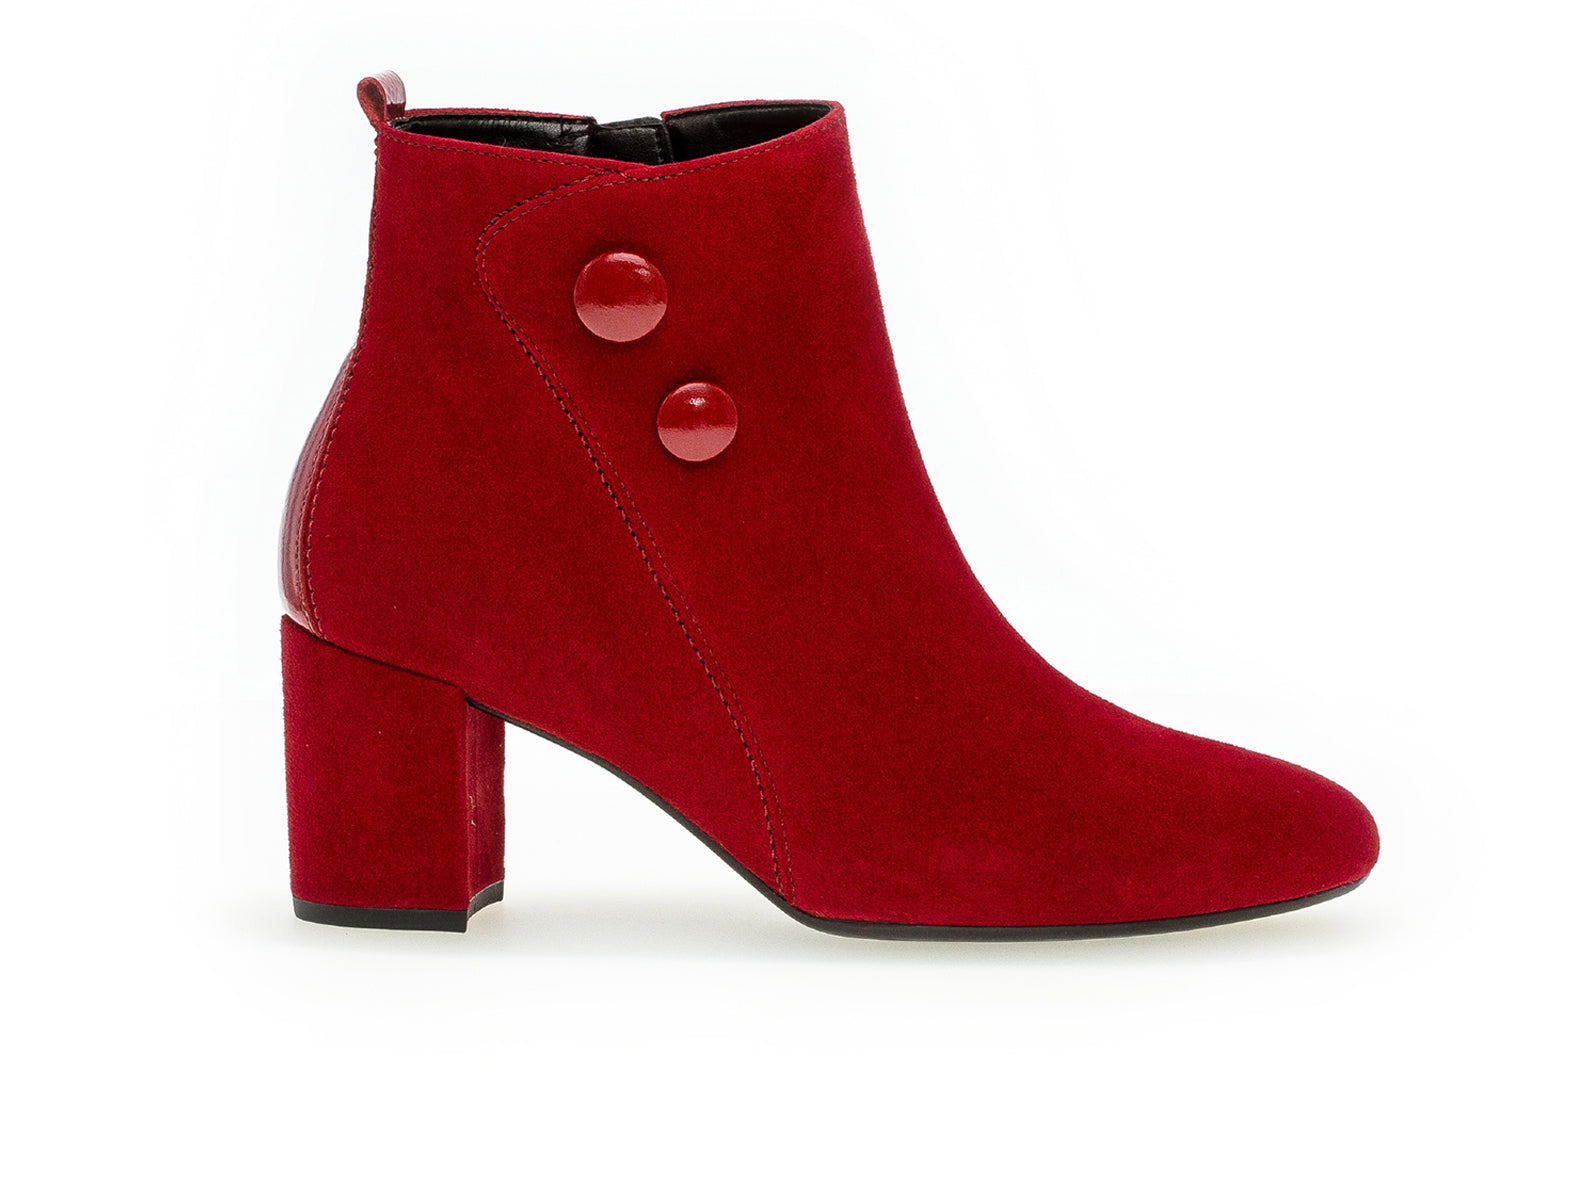 Ladies Boots at Gabor Shoes Ireland